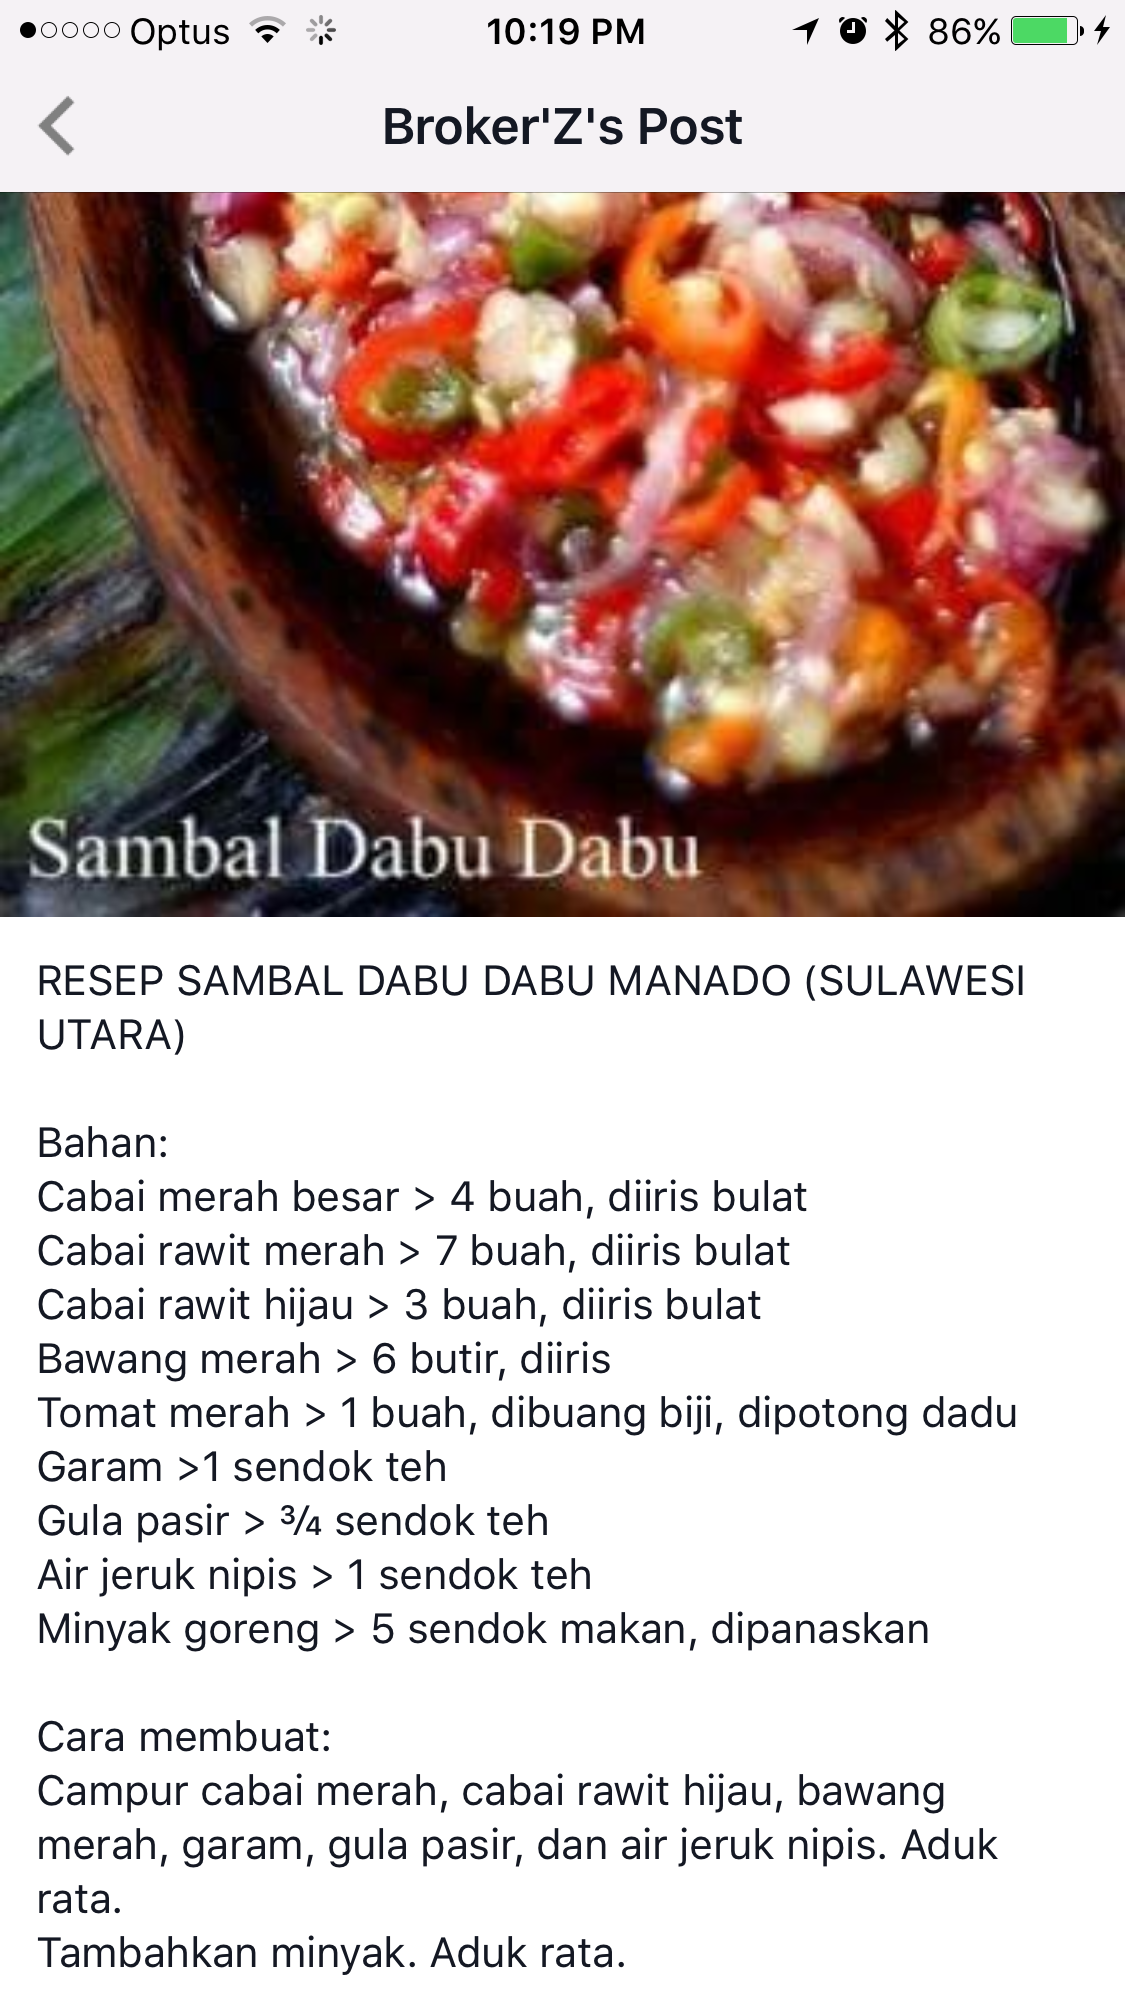 Pin By Jidah On Dapur In 2018 Pinterest Indonesian Recipes Food Minyak Ijo Hijau And Sauces